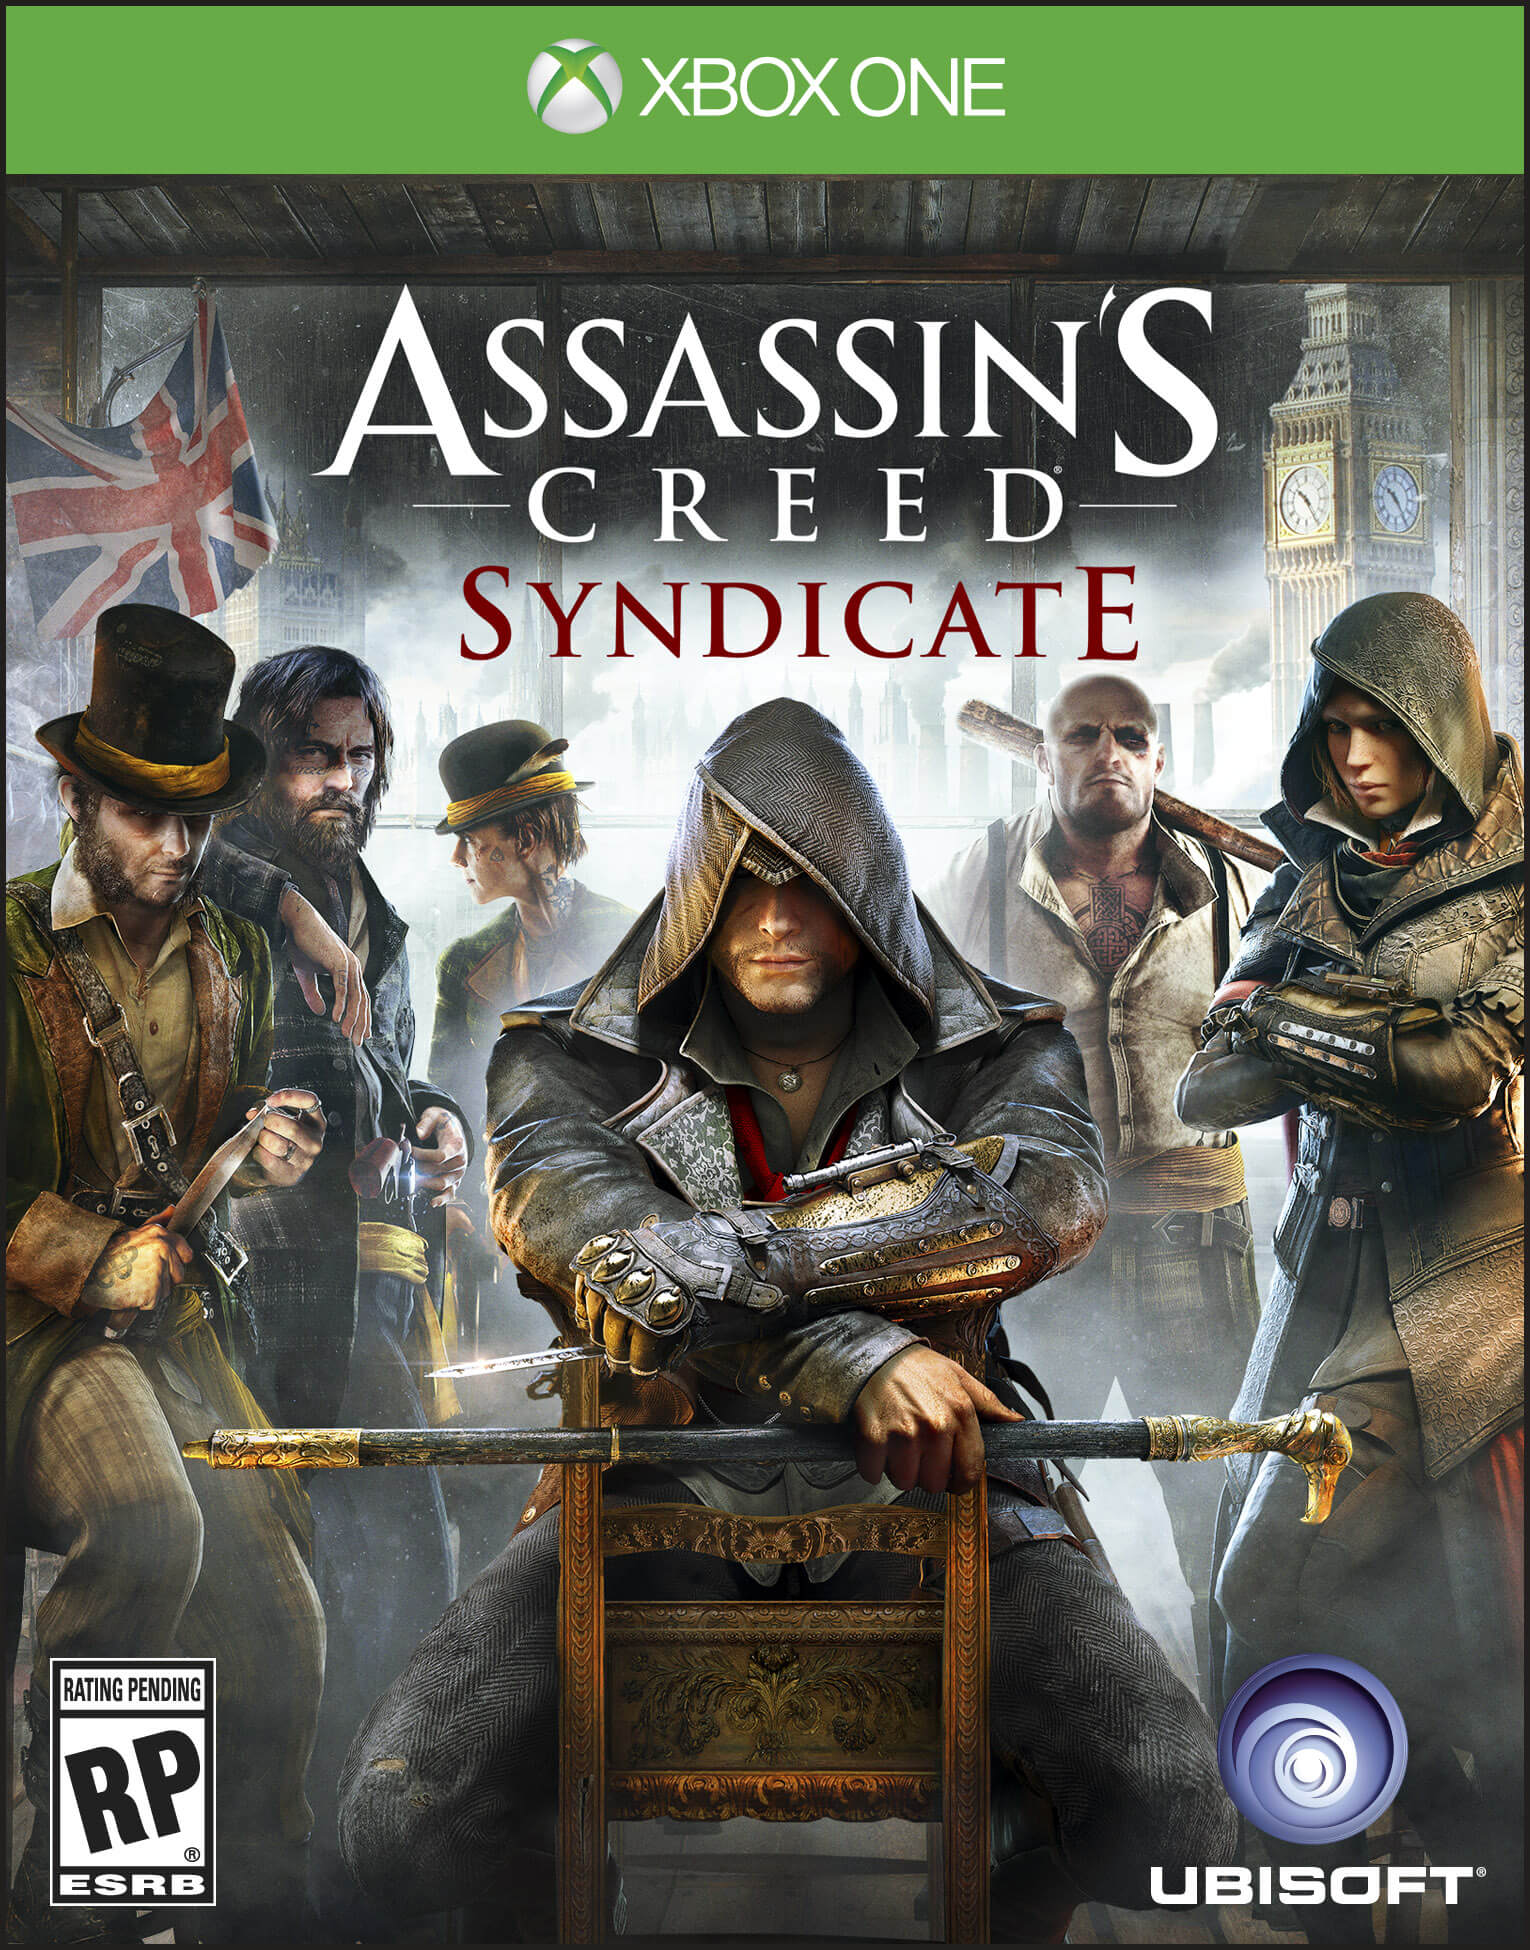 Assassins_Creed_Syndicate_Xbox_One_Box_Art_1431440047